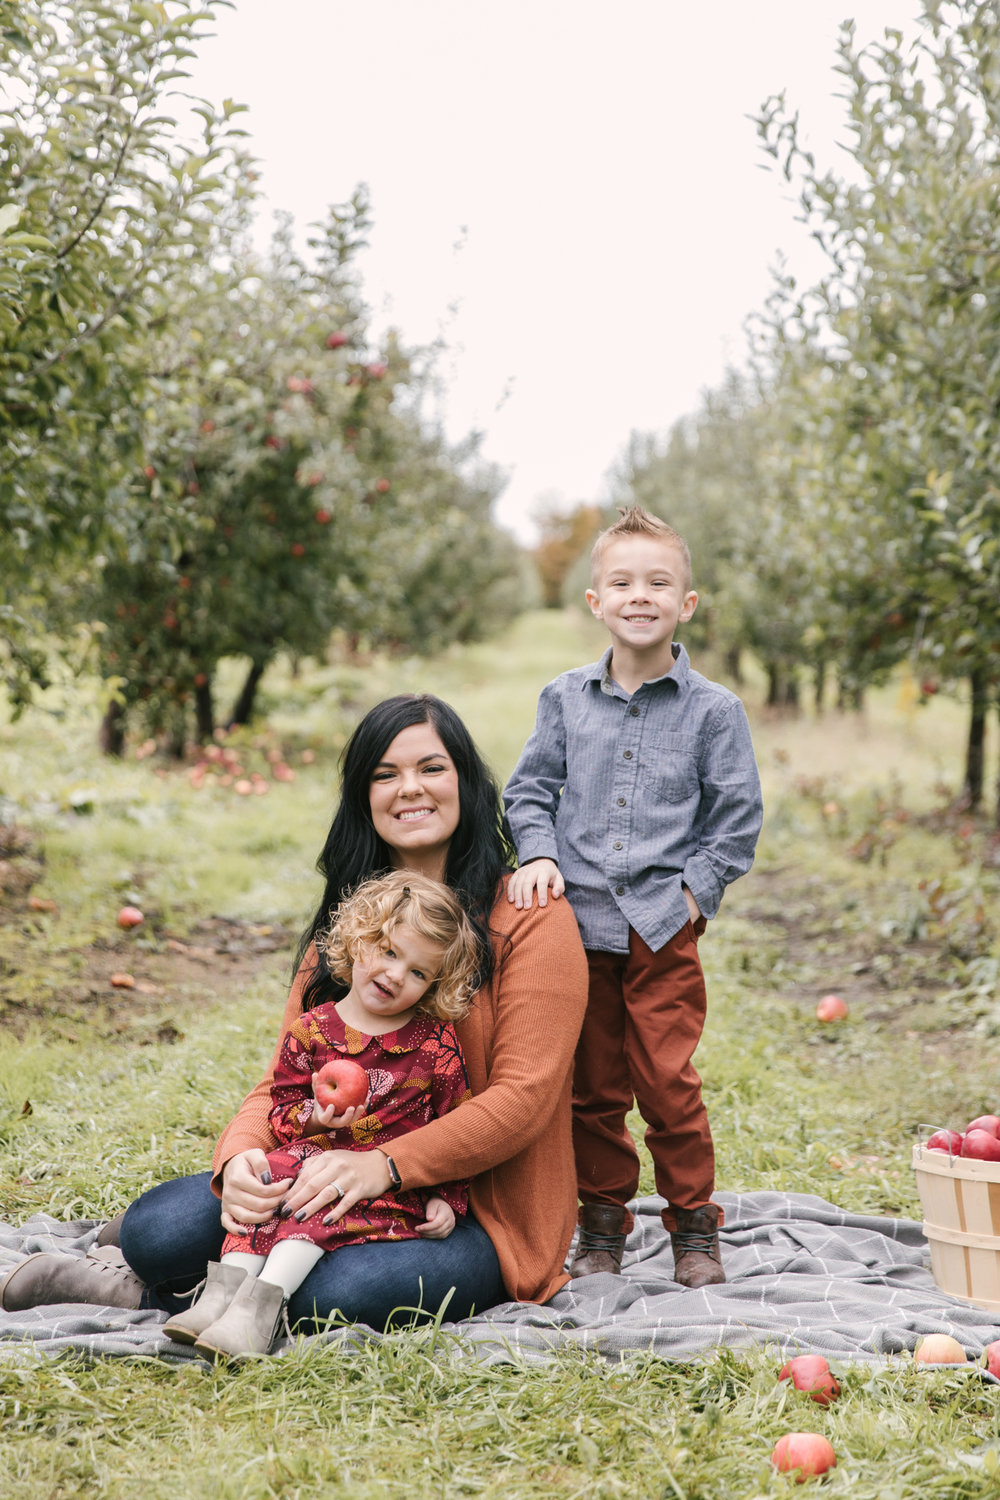 family-photography-session-at-hartford-apple-orchards-hartford-ohio-by-family-photographer-christie-leigh-photo-36.JPG